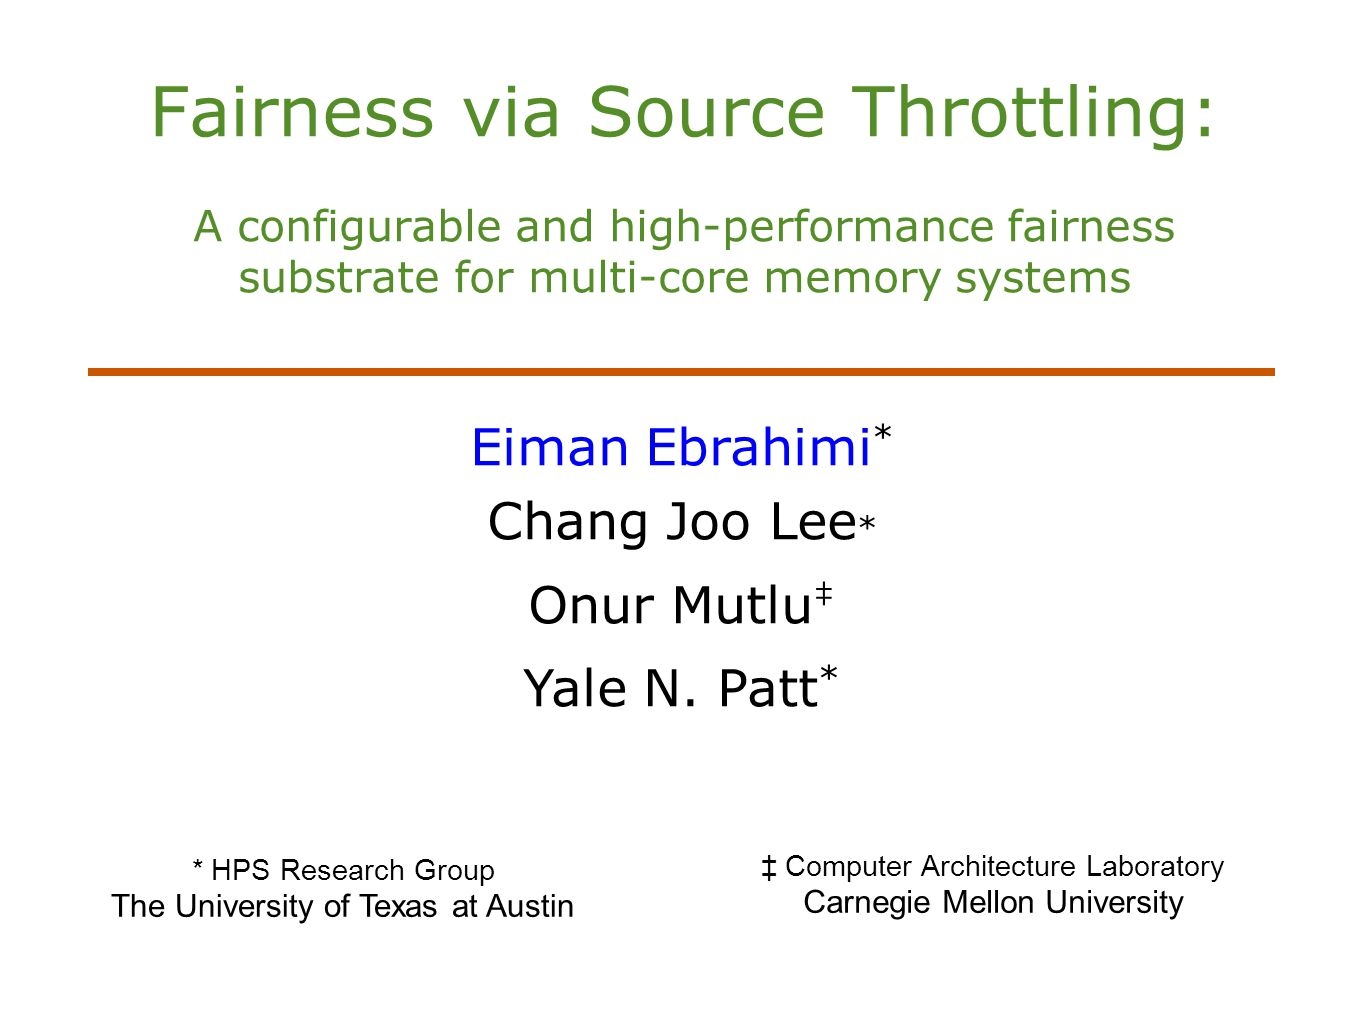 Fairness via Source Throttling: A configurable and high-performance fairness substrate for multi-core memory systems Eiman Ebrahimi * Chang Joo Lee * Onur Mutlu ‡ Yale N.